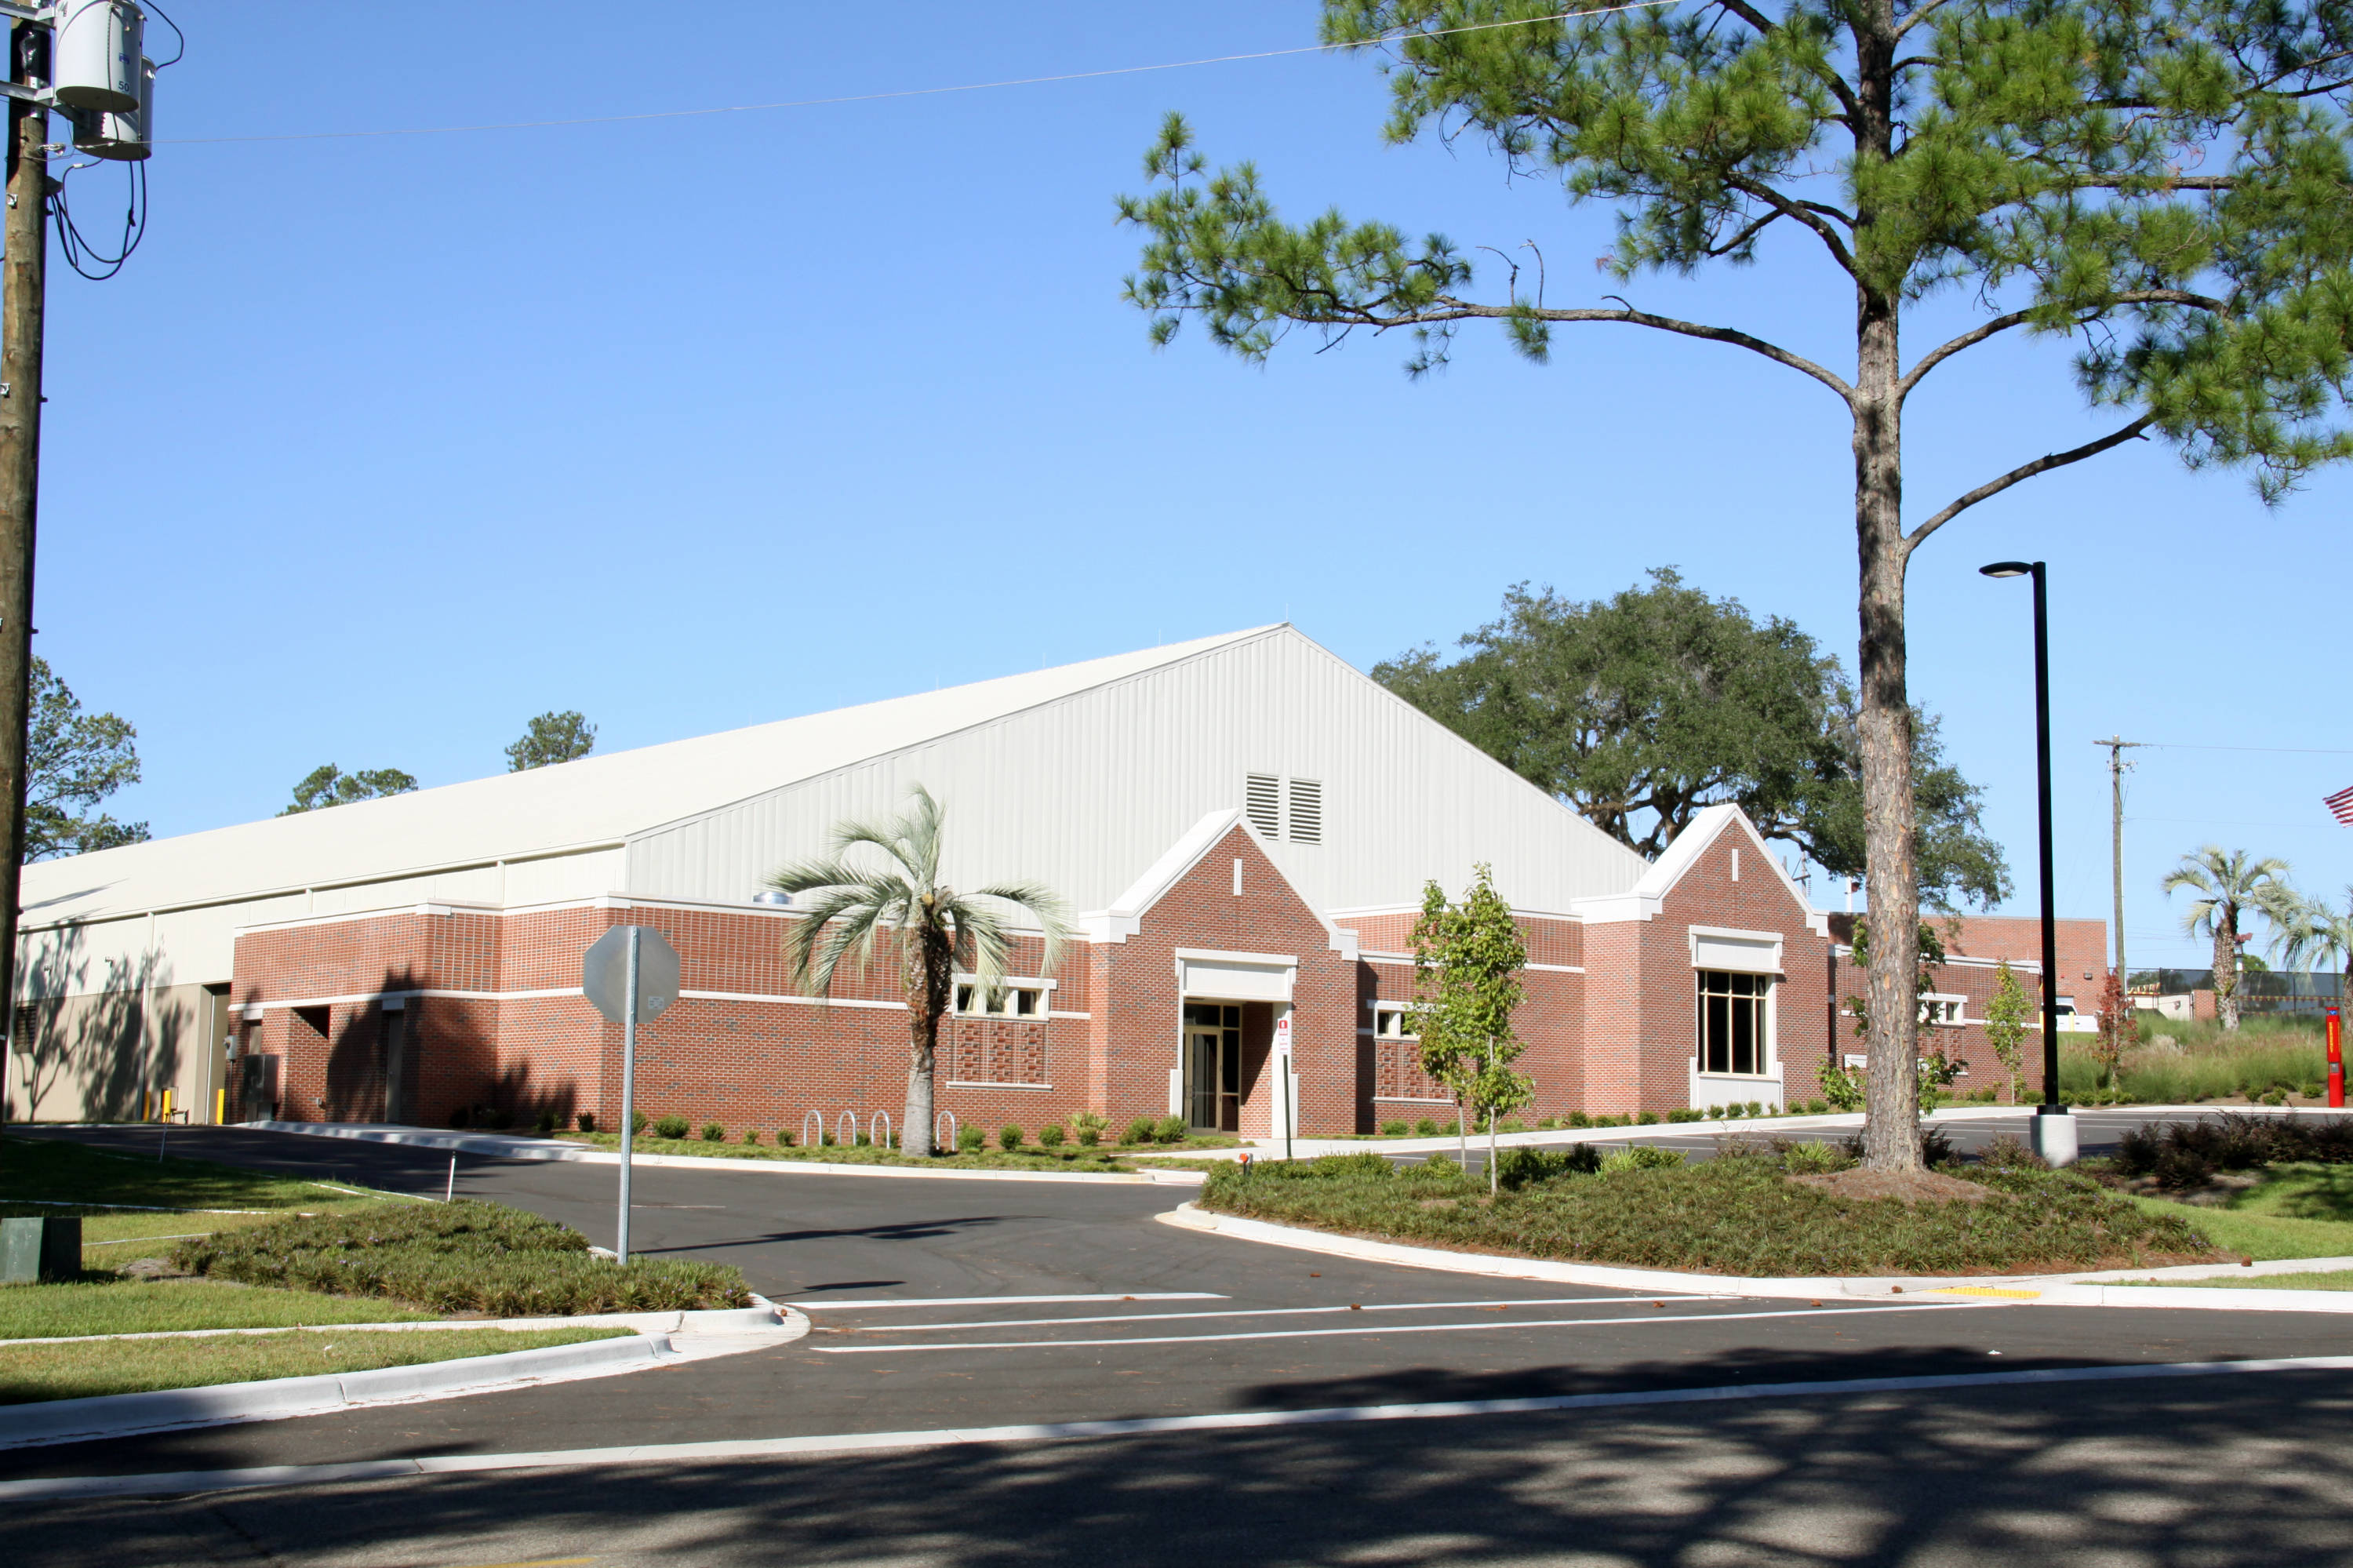 The Indoor Tennis Facility at FSU on Pottsdamer Street.